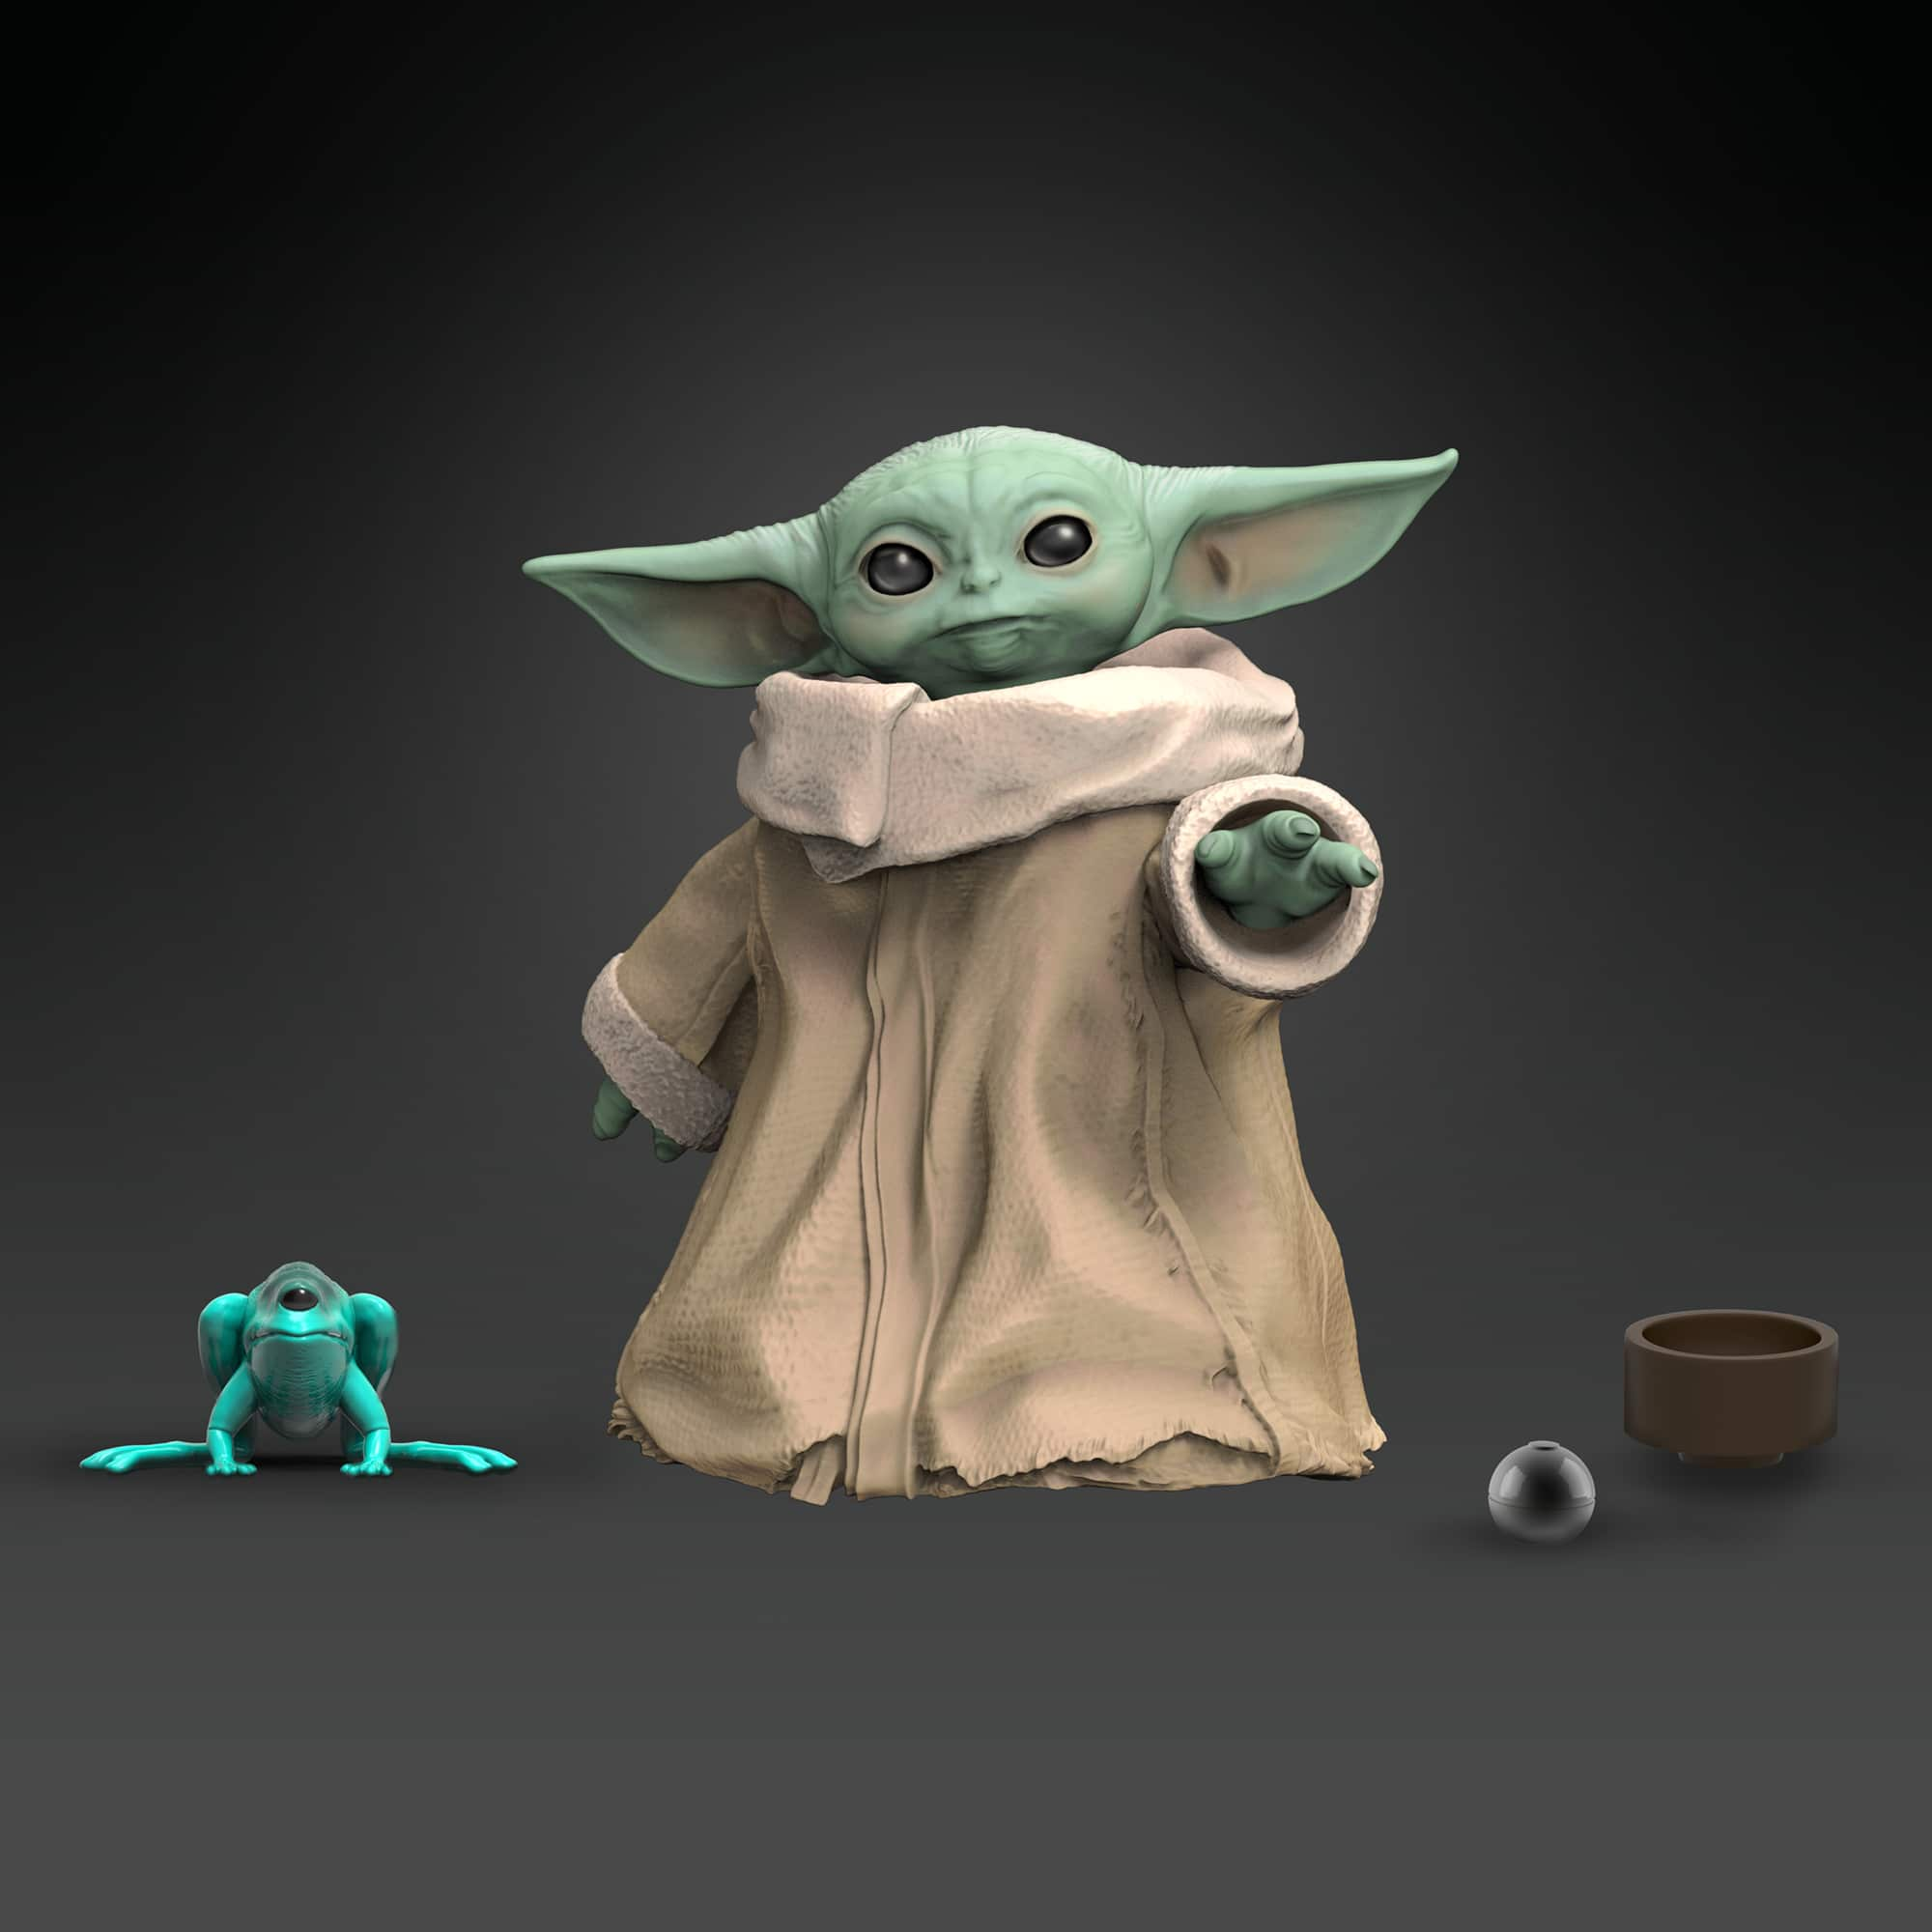 Hasbro's first Baby Yoda toys are here and they're freaking adorable 16